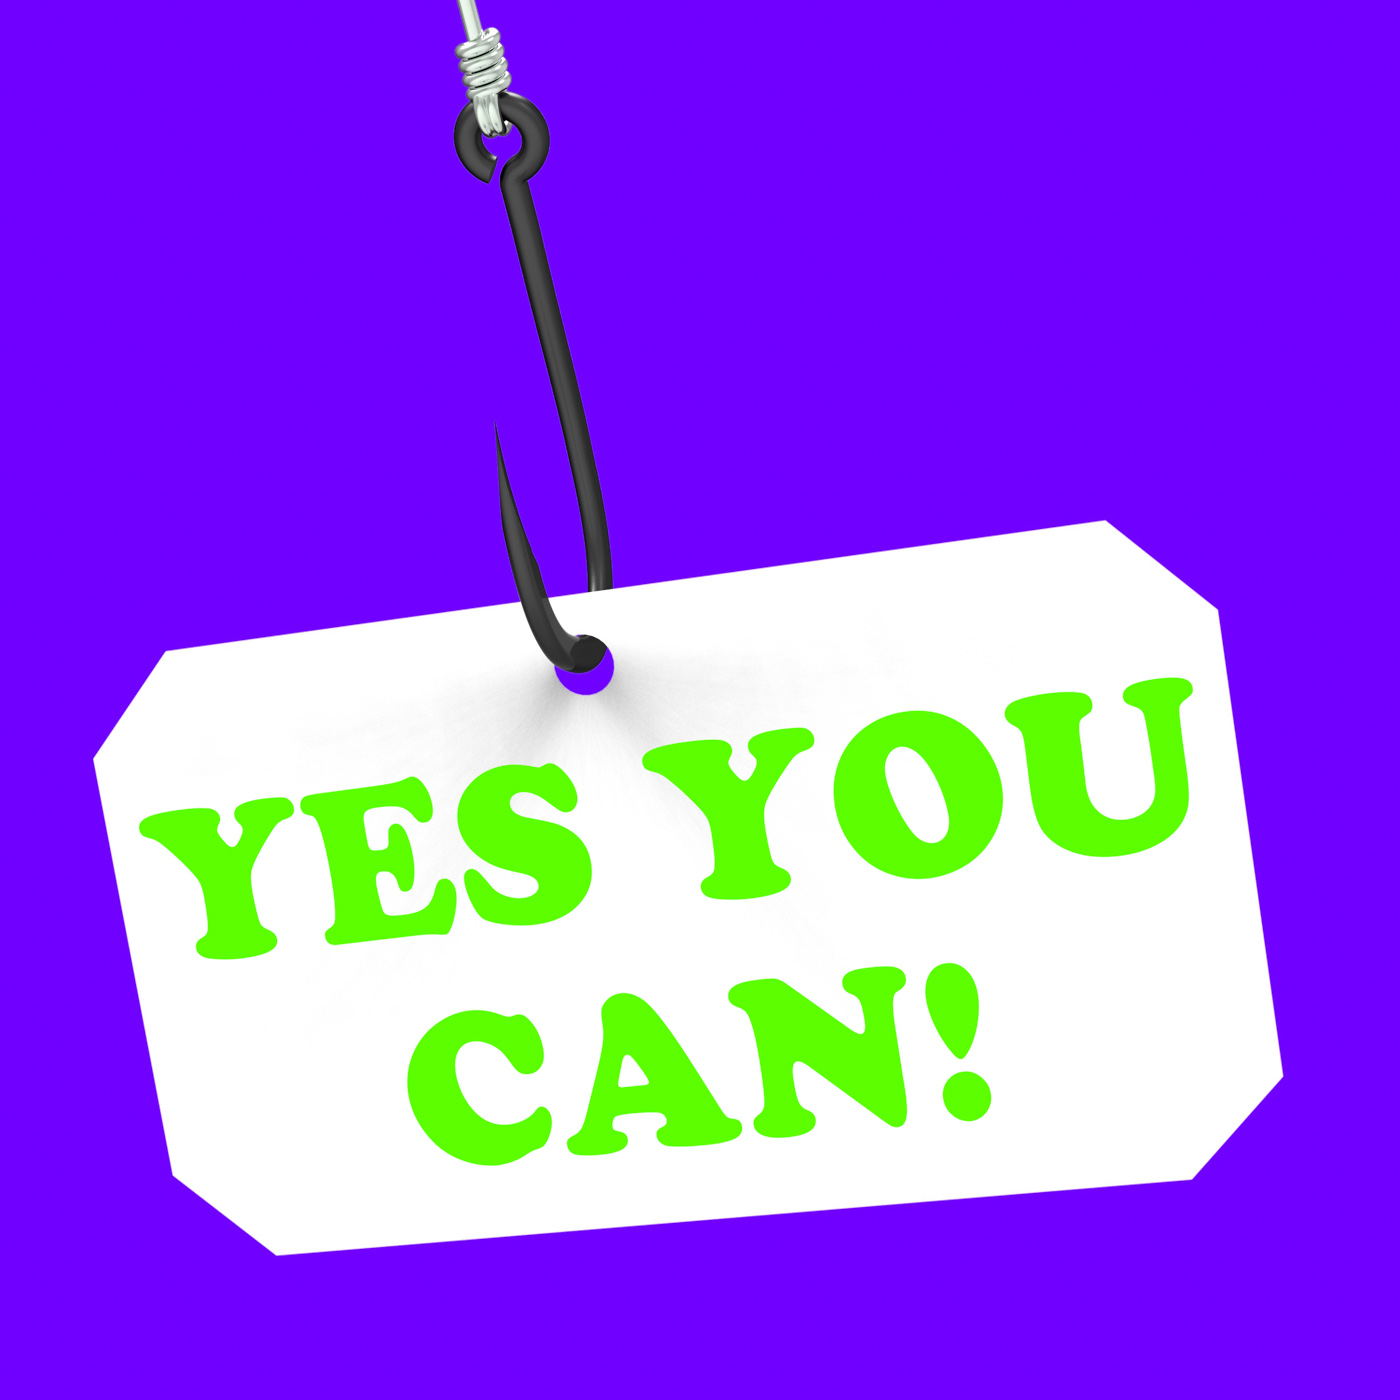 Yes you can! on hook means inspiration and motivation photo